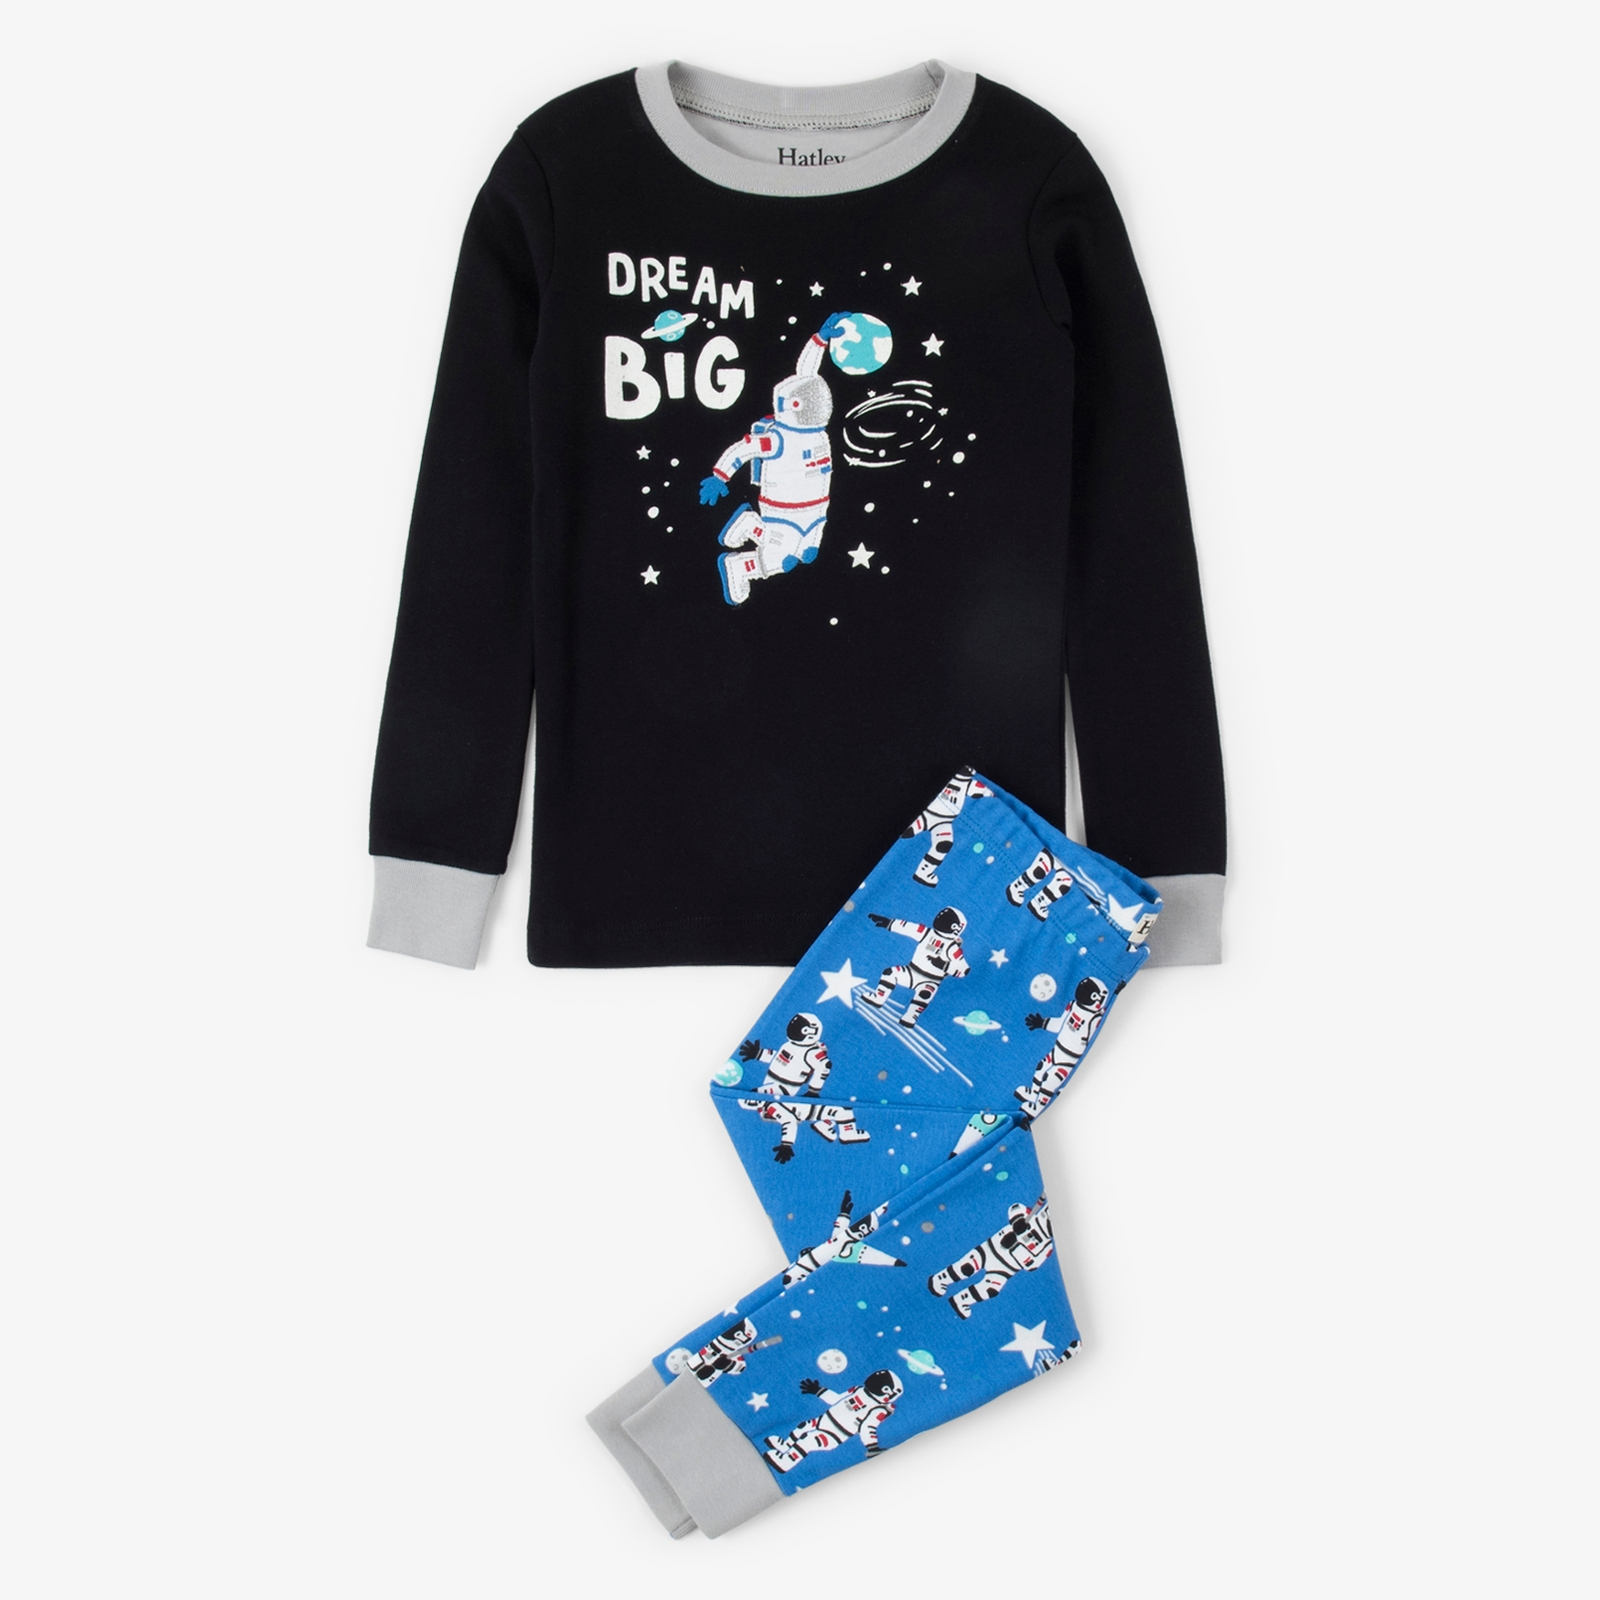 Hatley pijama niño/a dream big